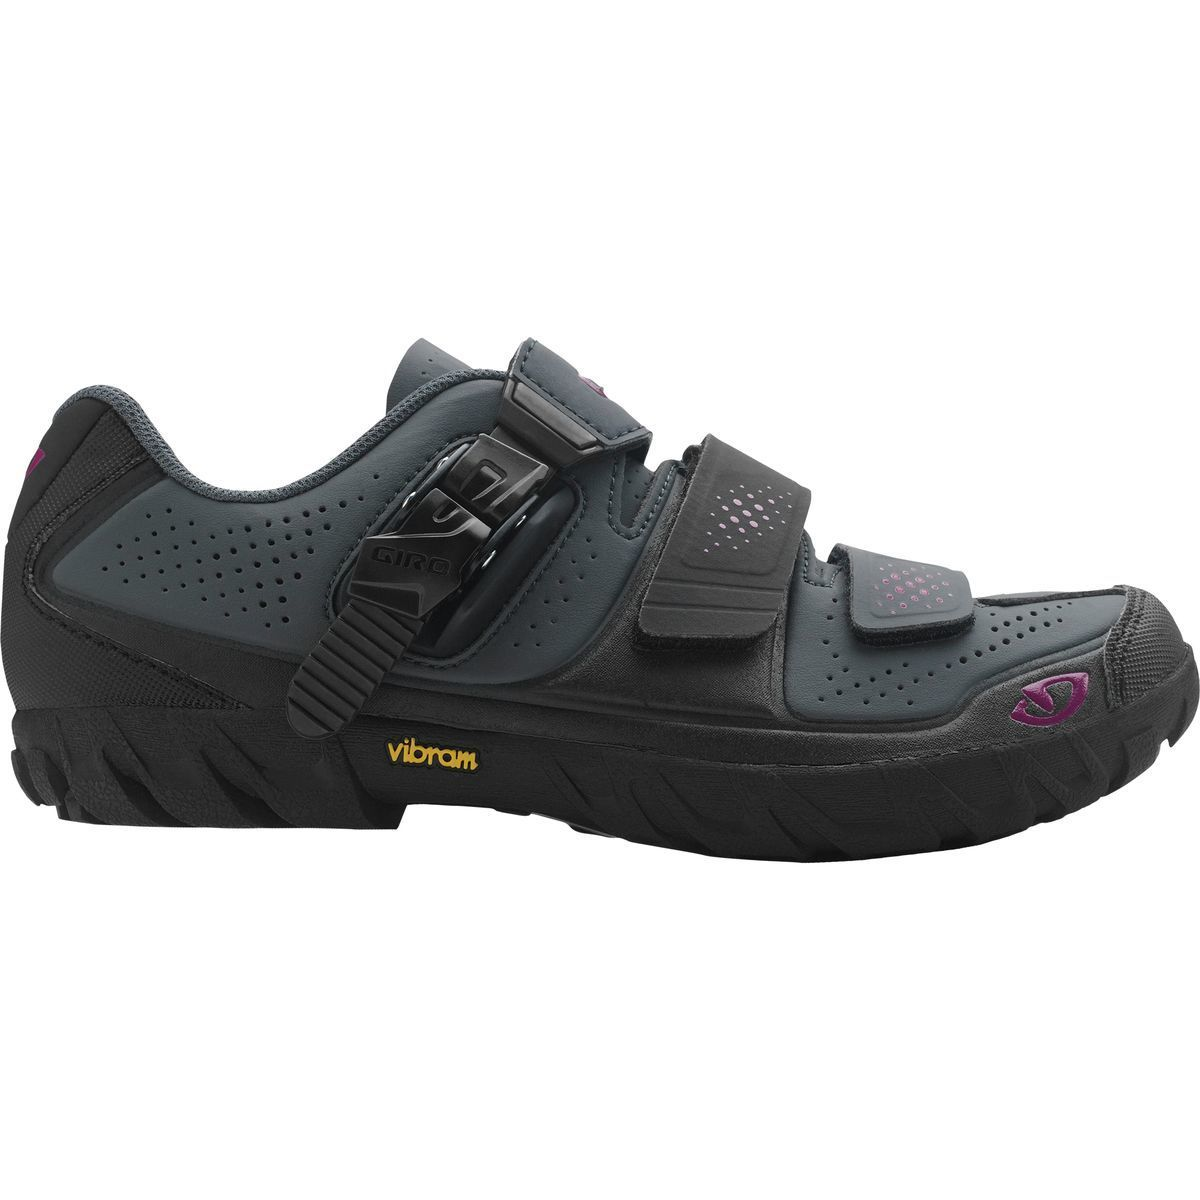 White Special Sales Giro Terradura Mountain Shoes Womens Black 7B4I